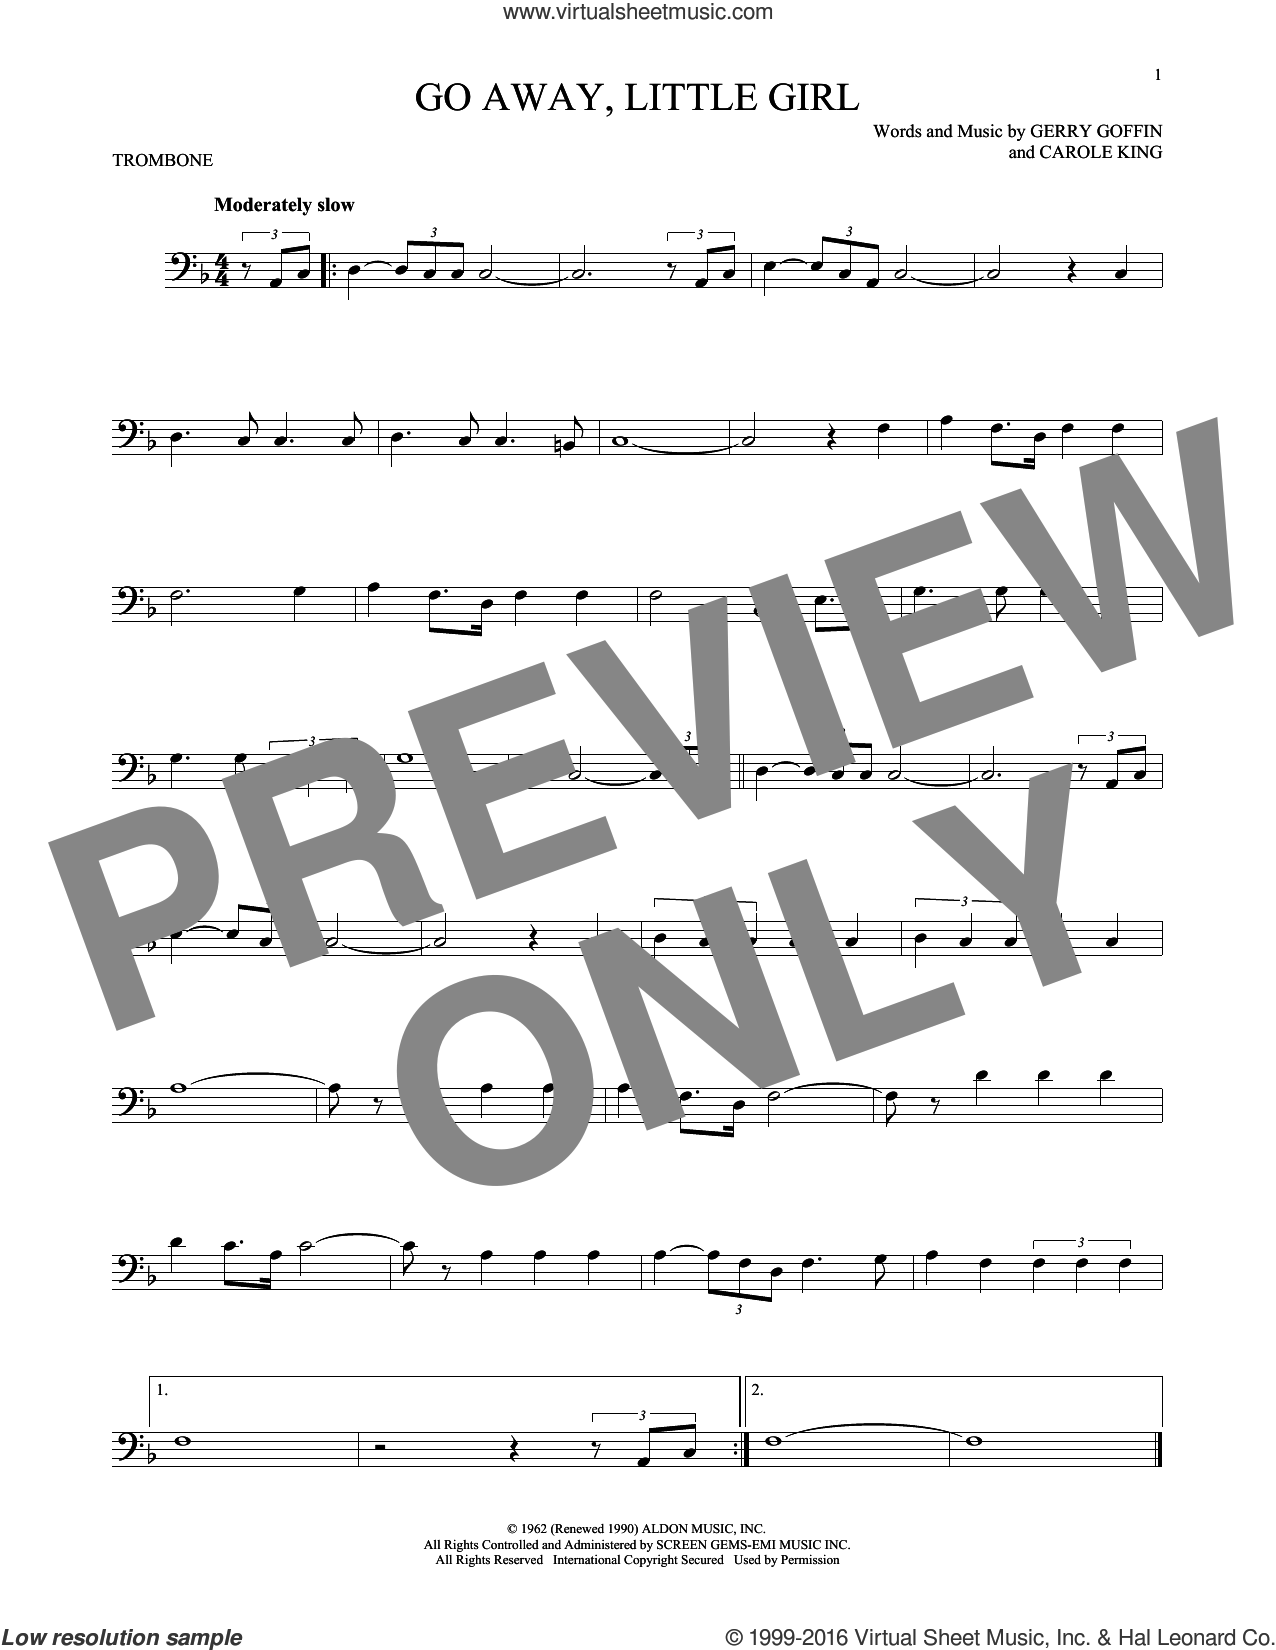 Go Away, Little Girl sheet music for trombone solo by Gerry Goffin